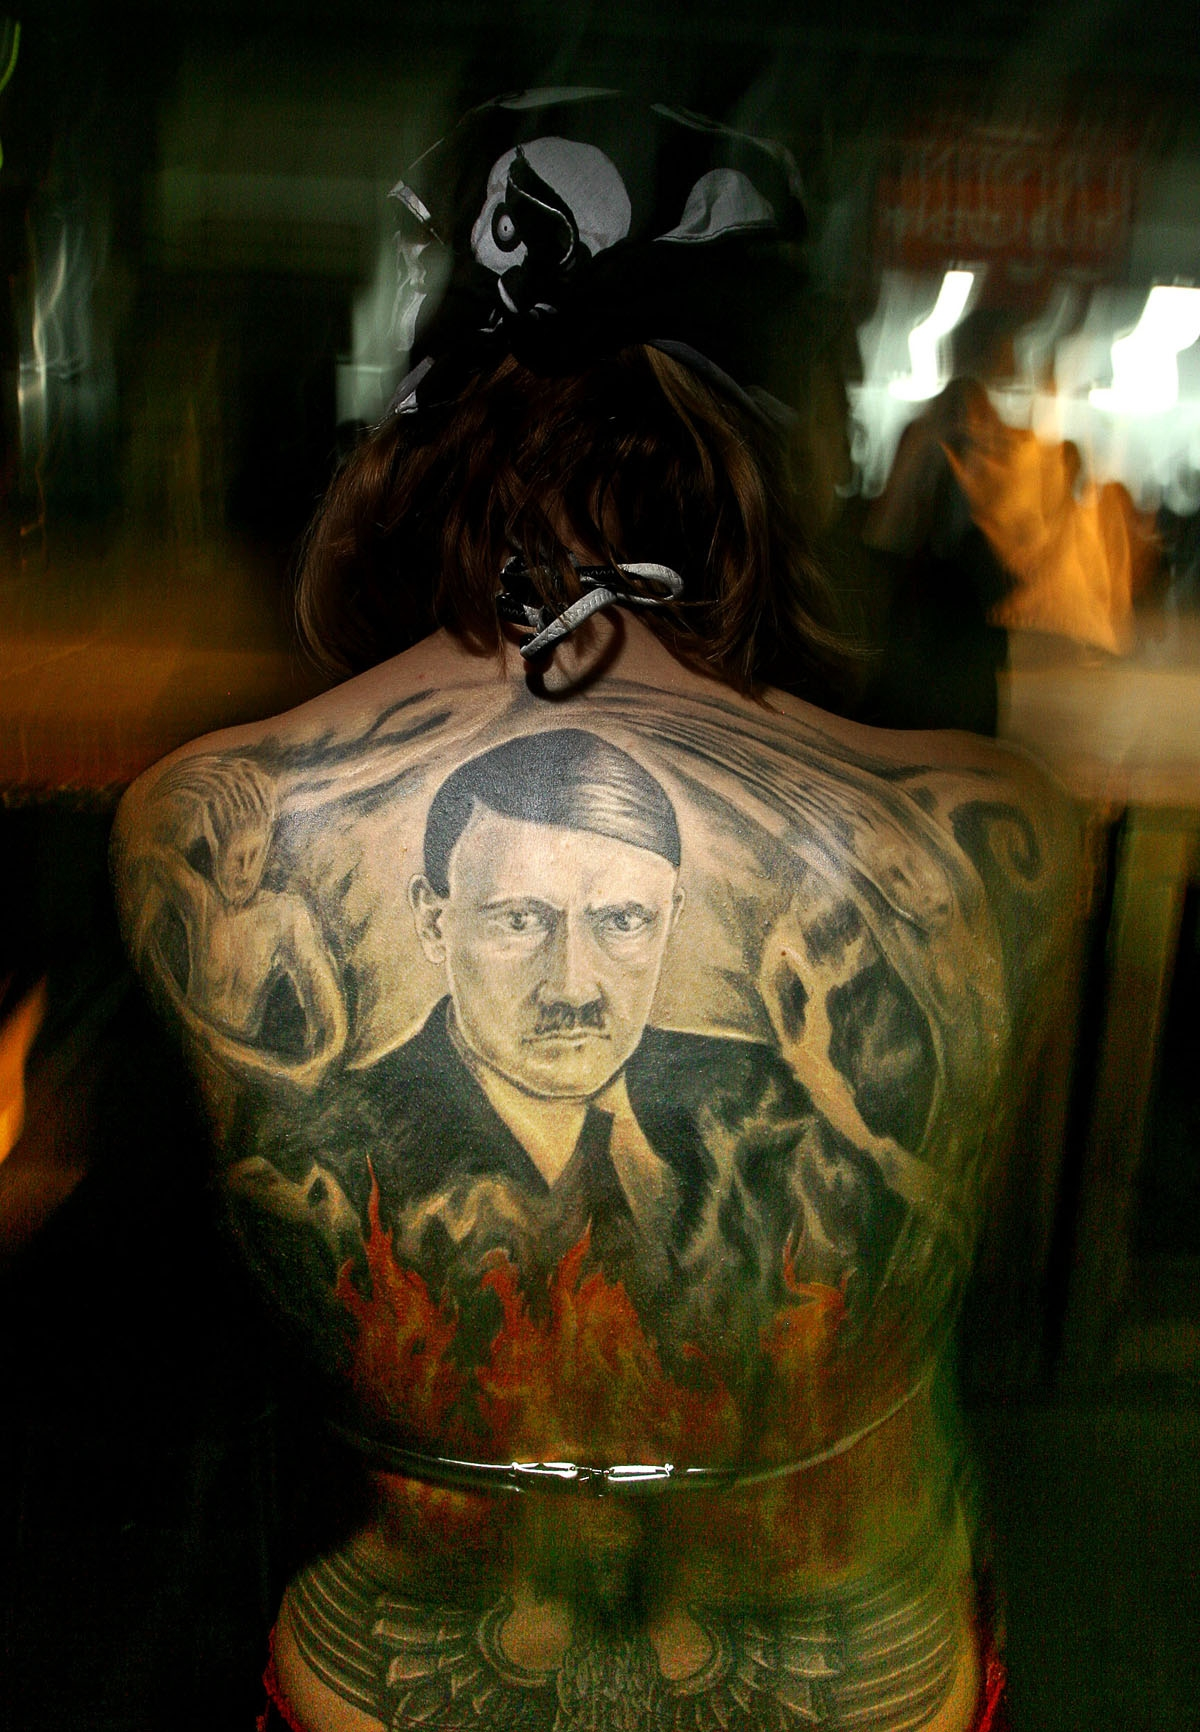 A Bulgarian girl shows off her tattoo representing Adolf Hitler as she takes part in a contest during the annual Tattoo and Piercing festival in Sofia, 08 October 2005.